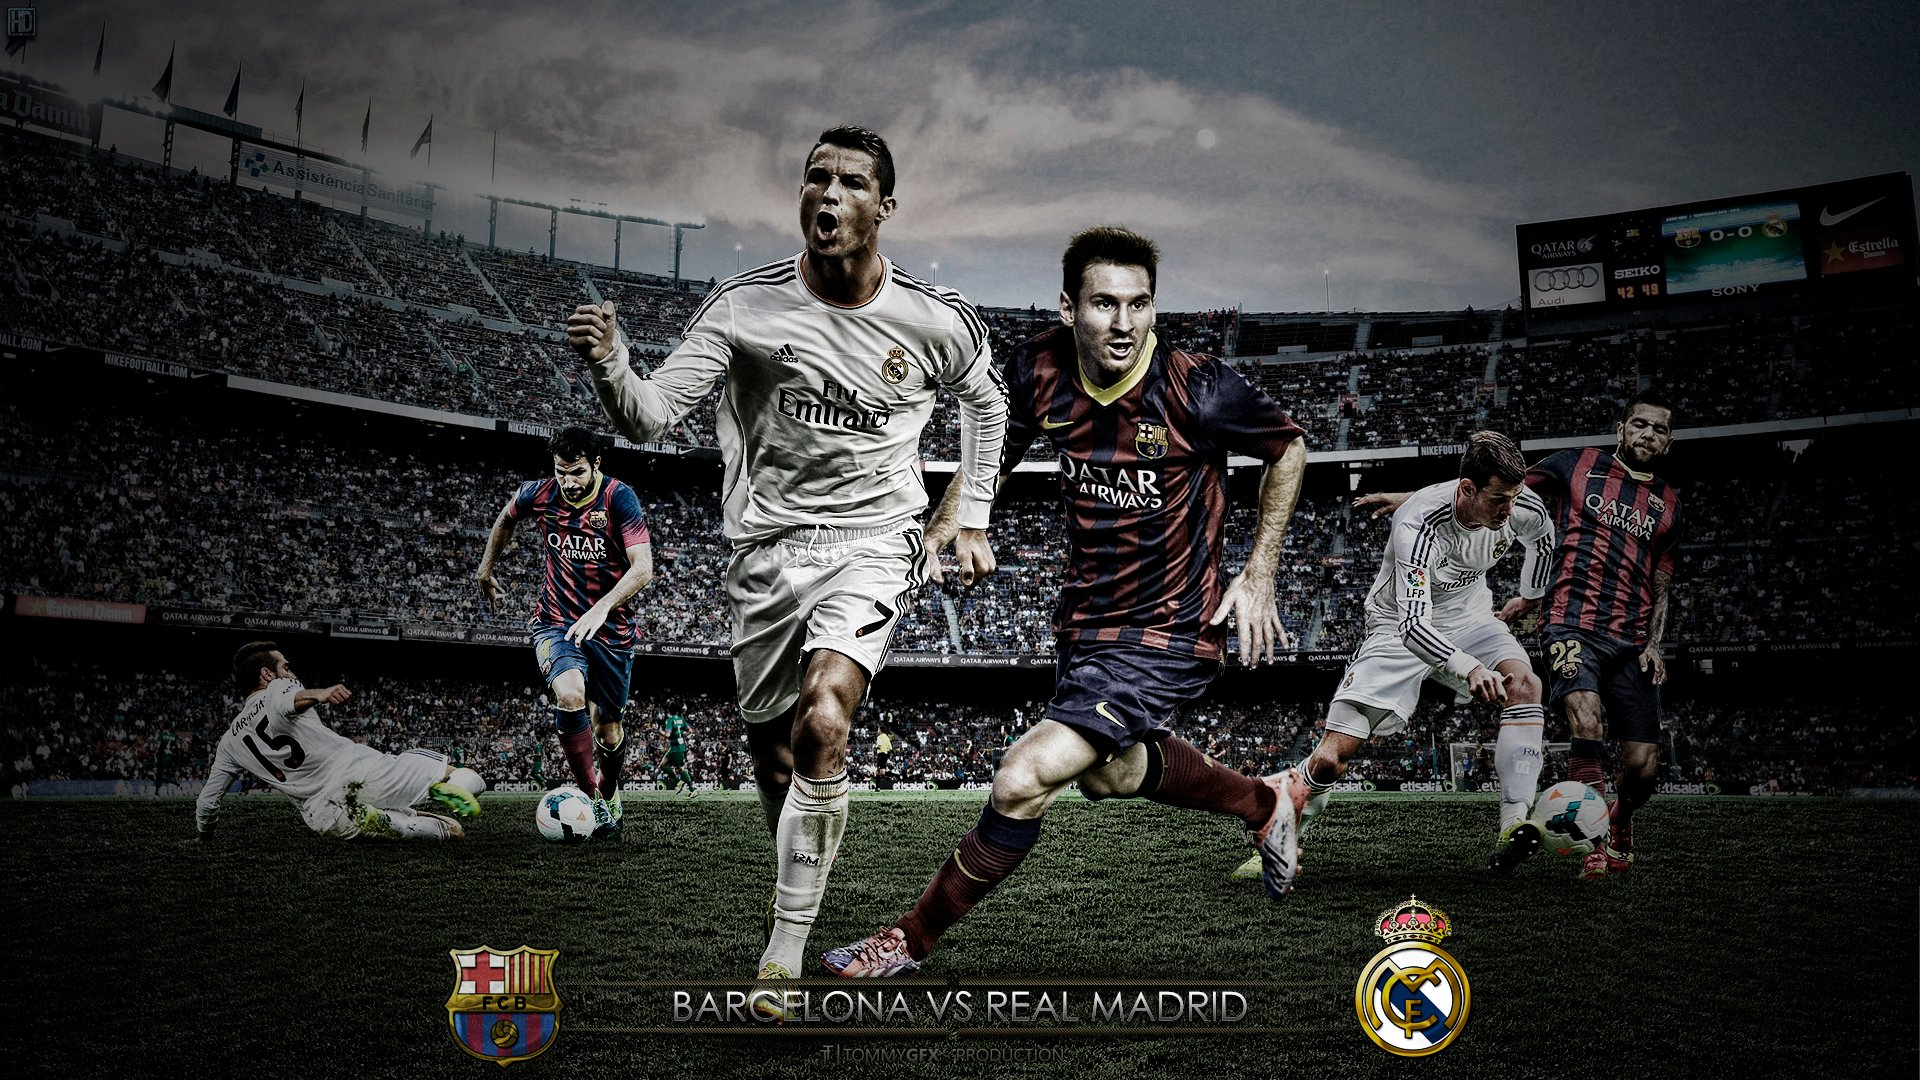 El Clsico Barcelona vs Real Madrid Wallpaper you like it 1920x1080